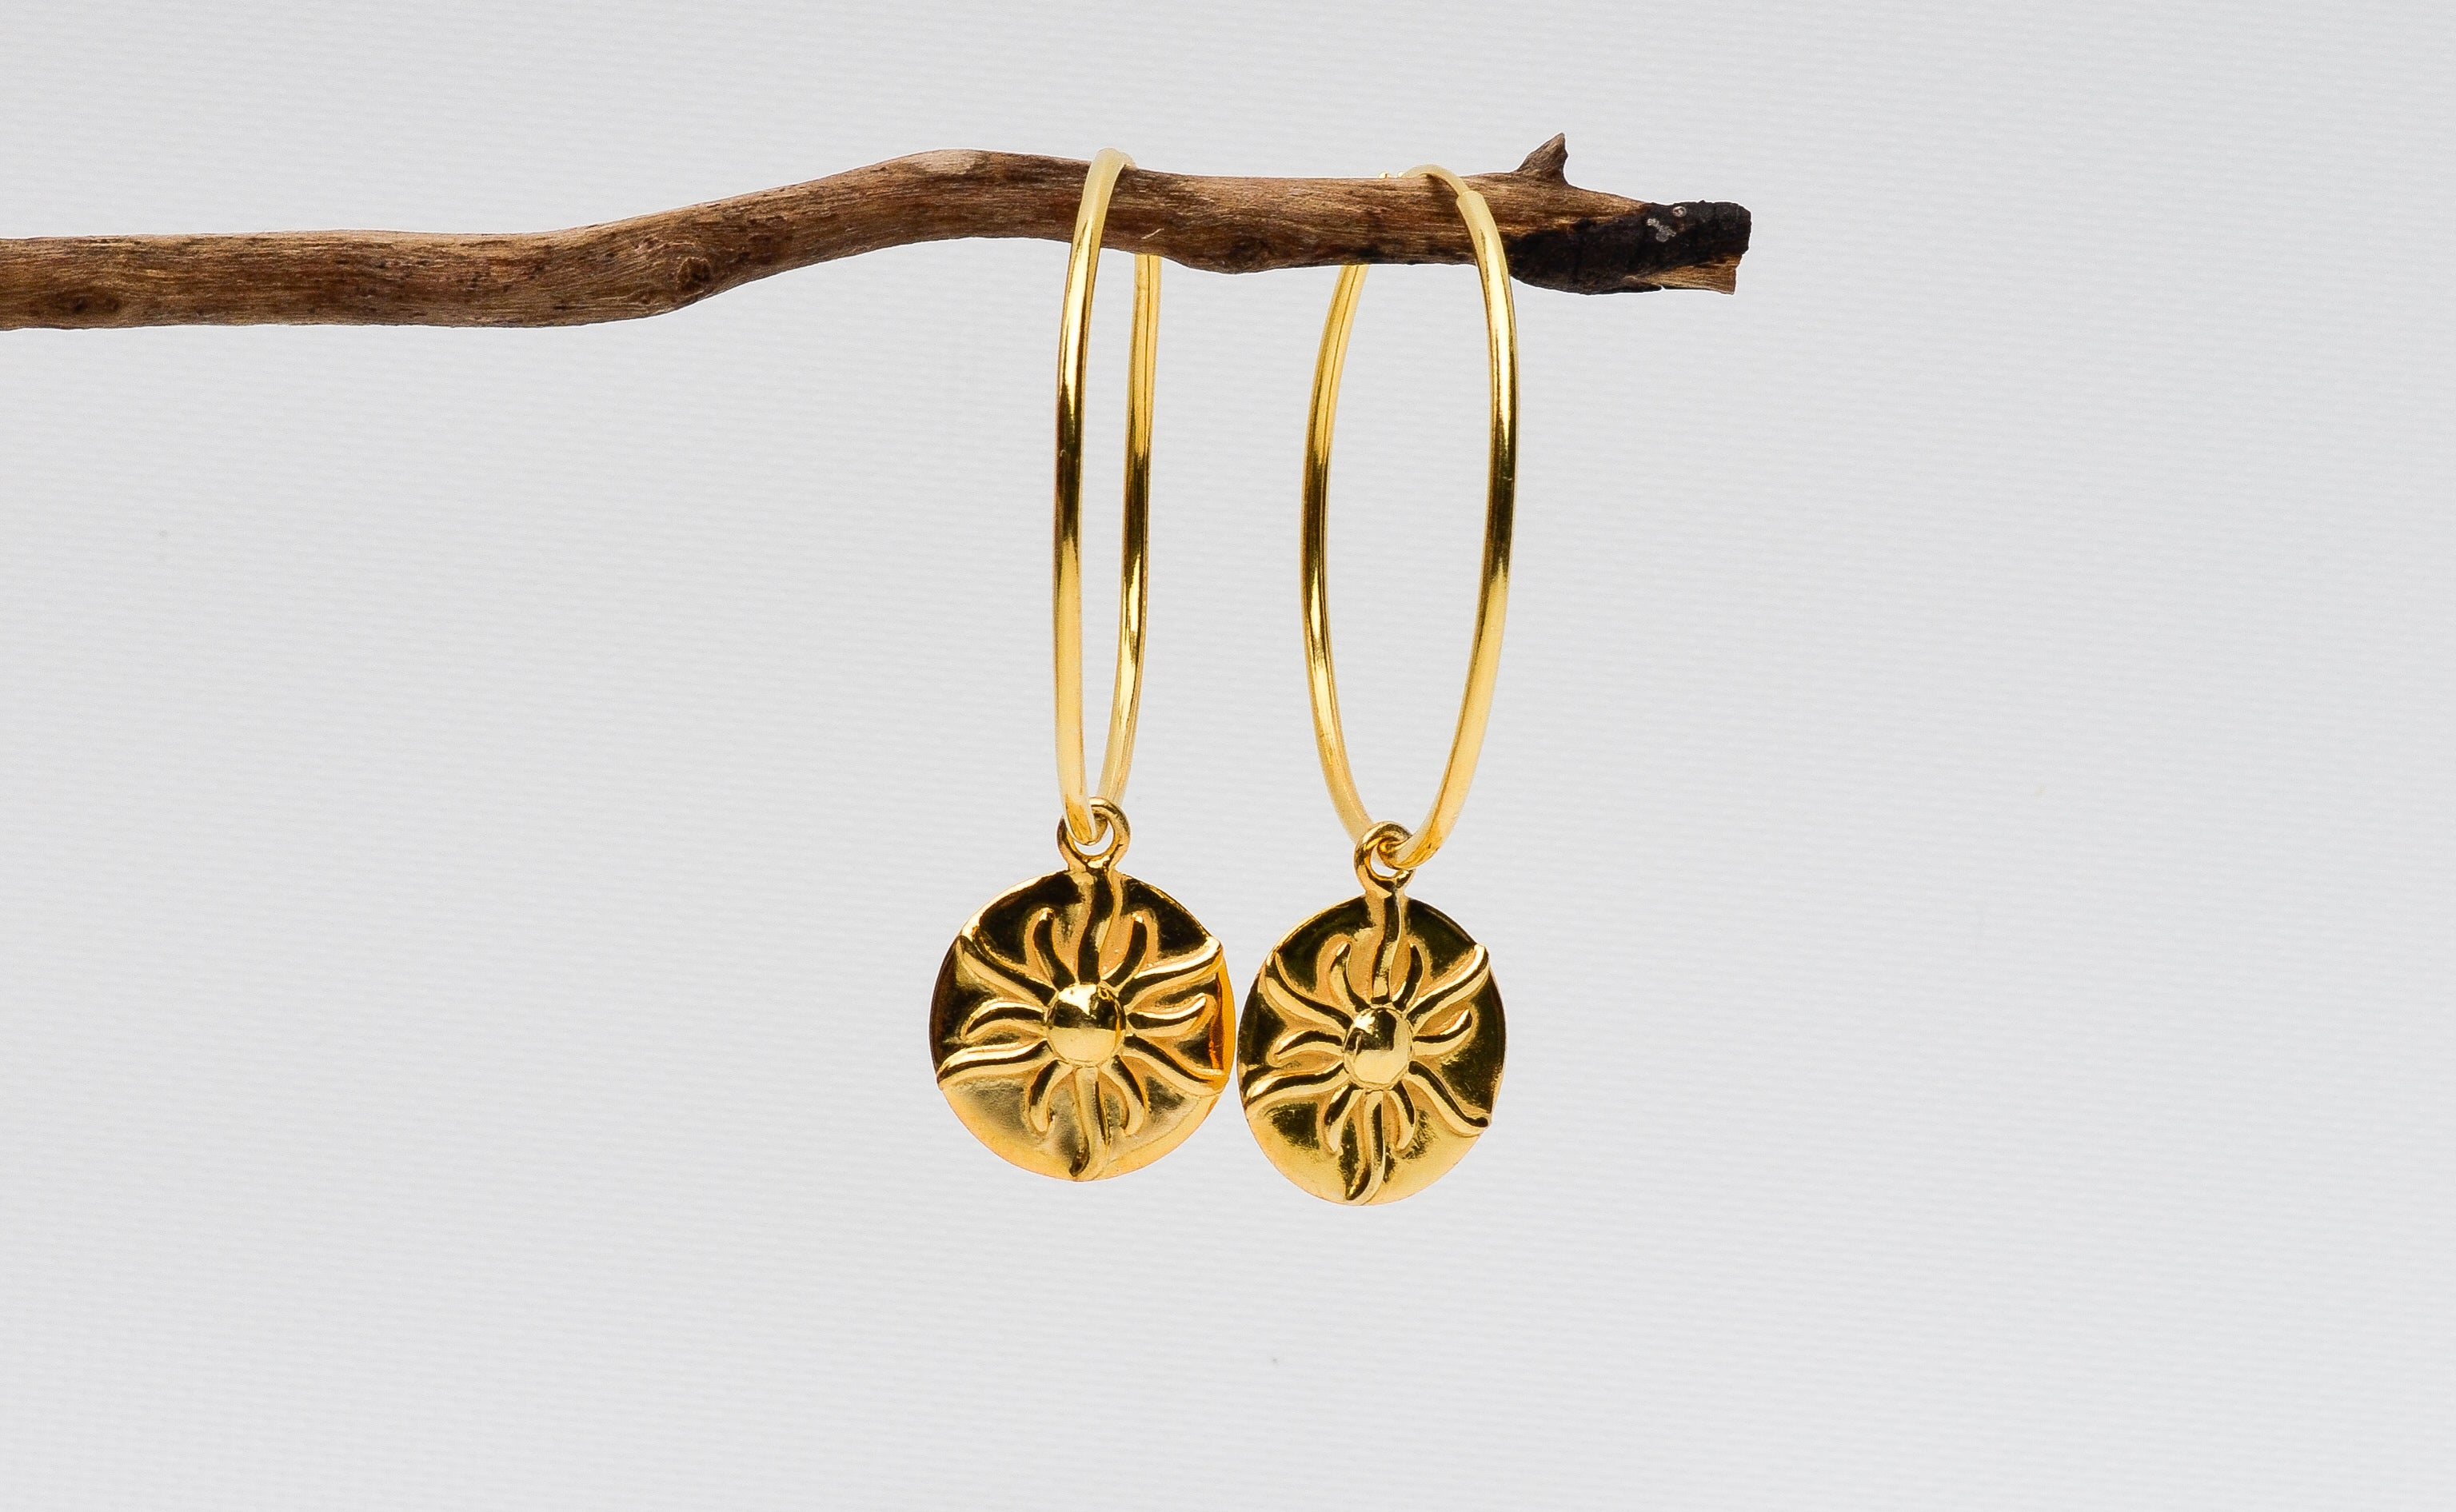 The Surya earrings are handmade out of sterling silver. Shop online at Nelumbo for unique rings, earrings and necklaces. Jewelry for women.